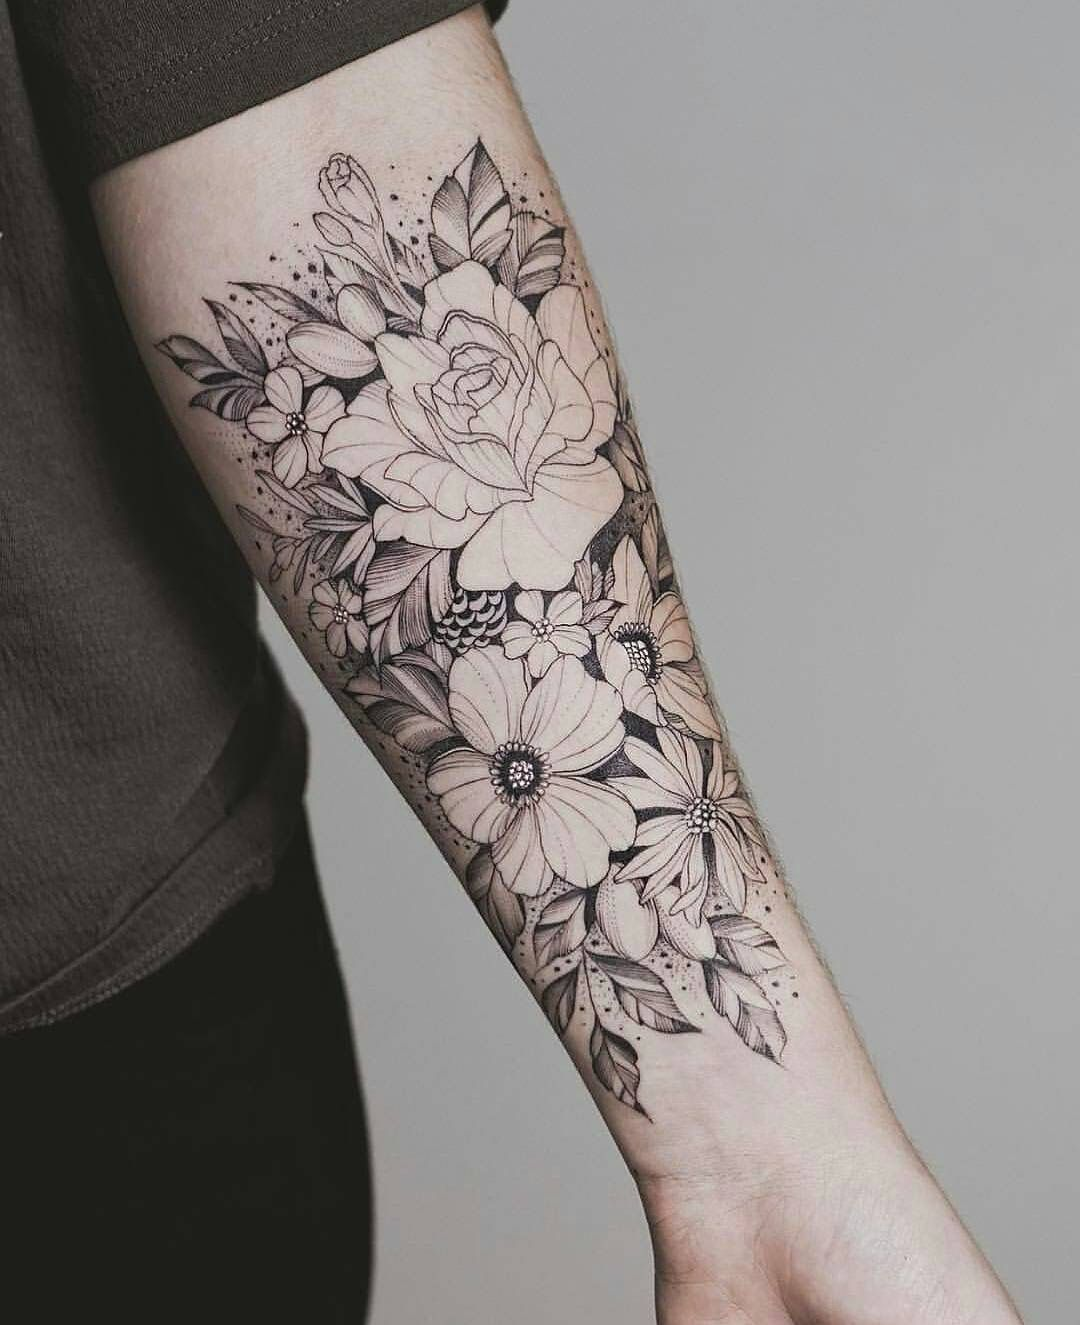 Pin By Nick On Tattoos Tatouage Tatouage Fleur Tatouage Avant Bras